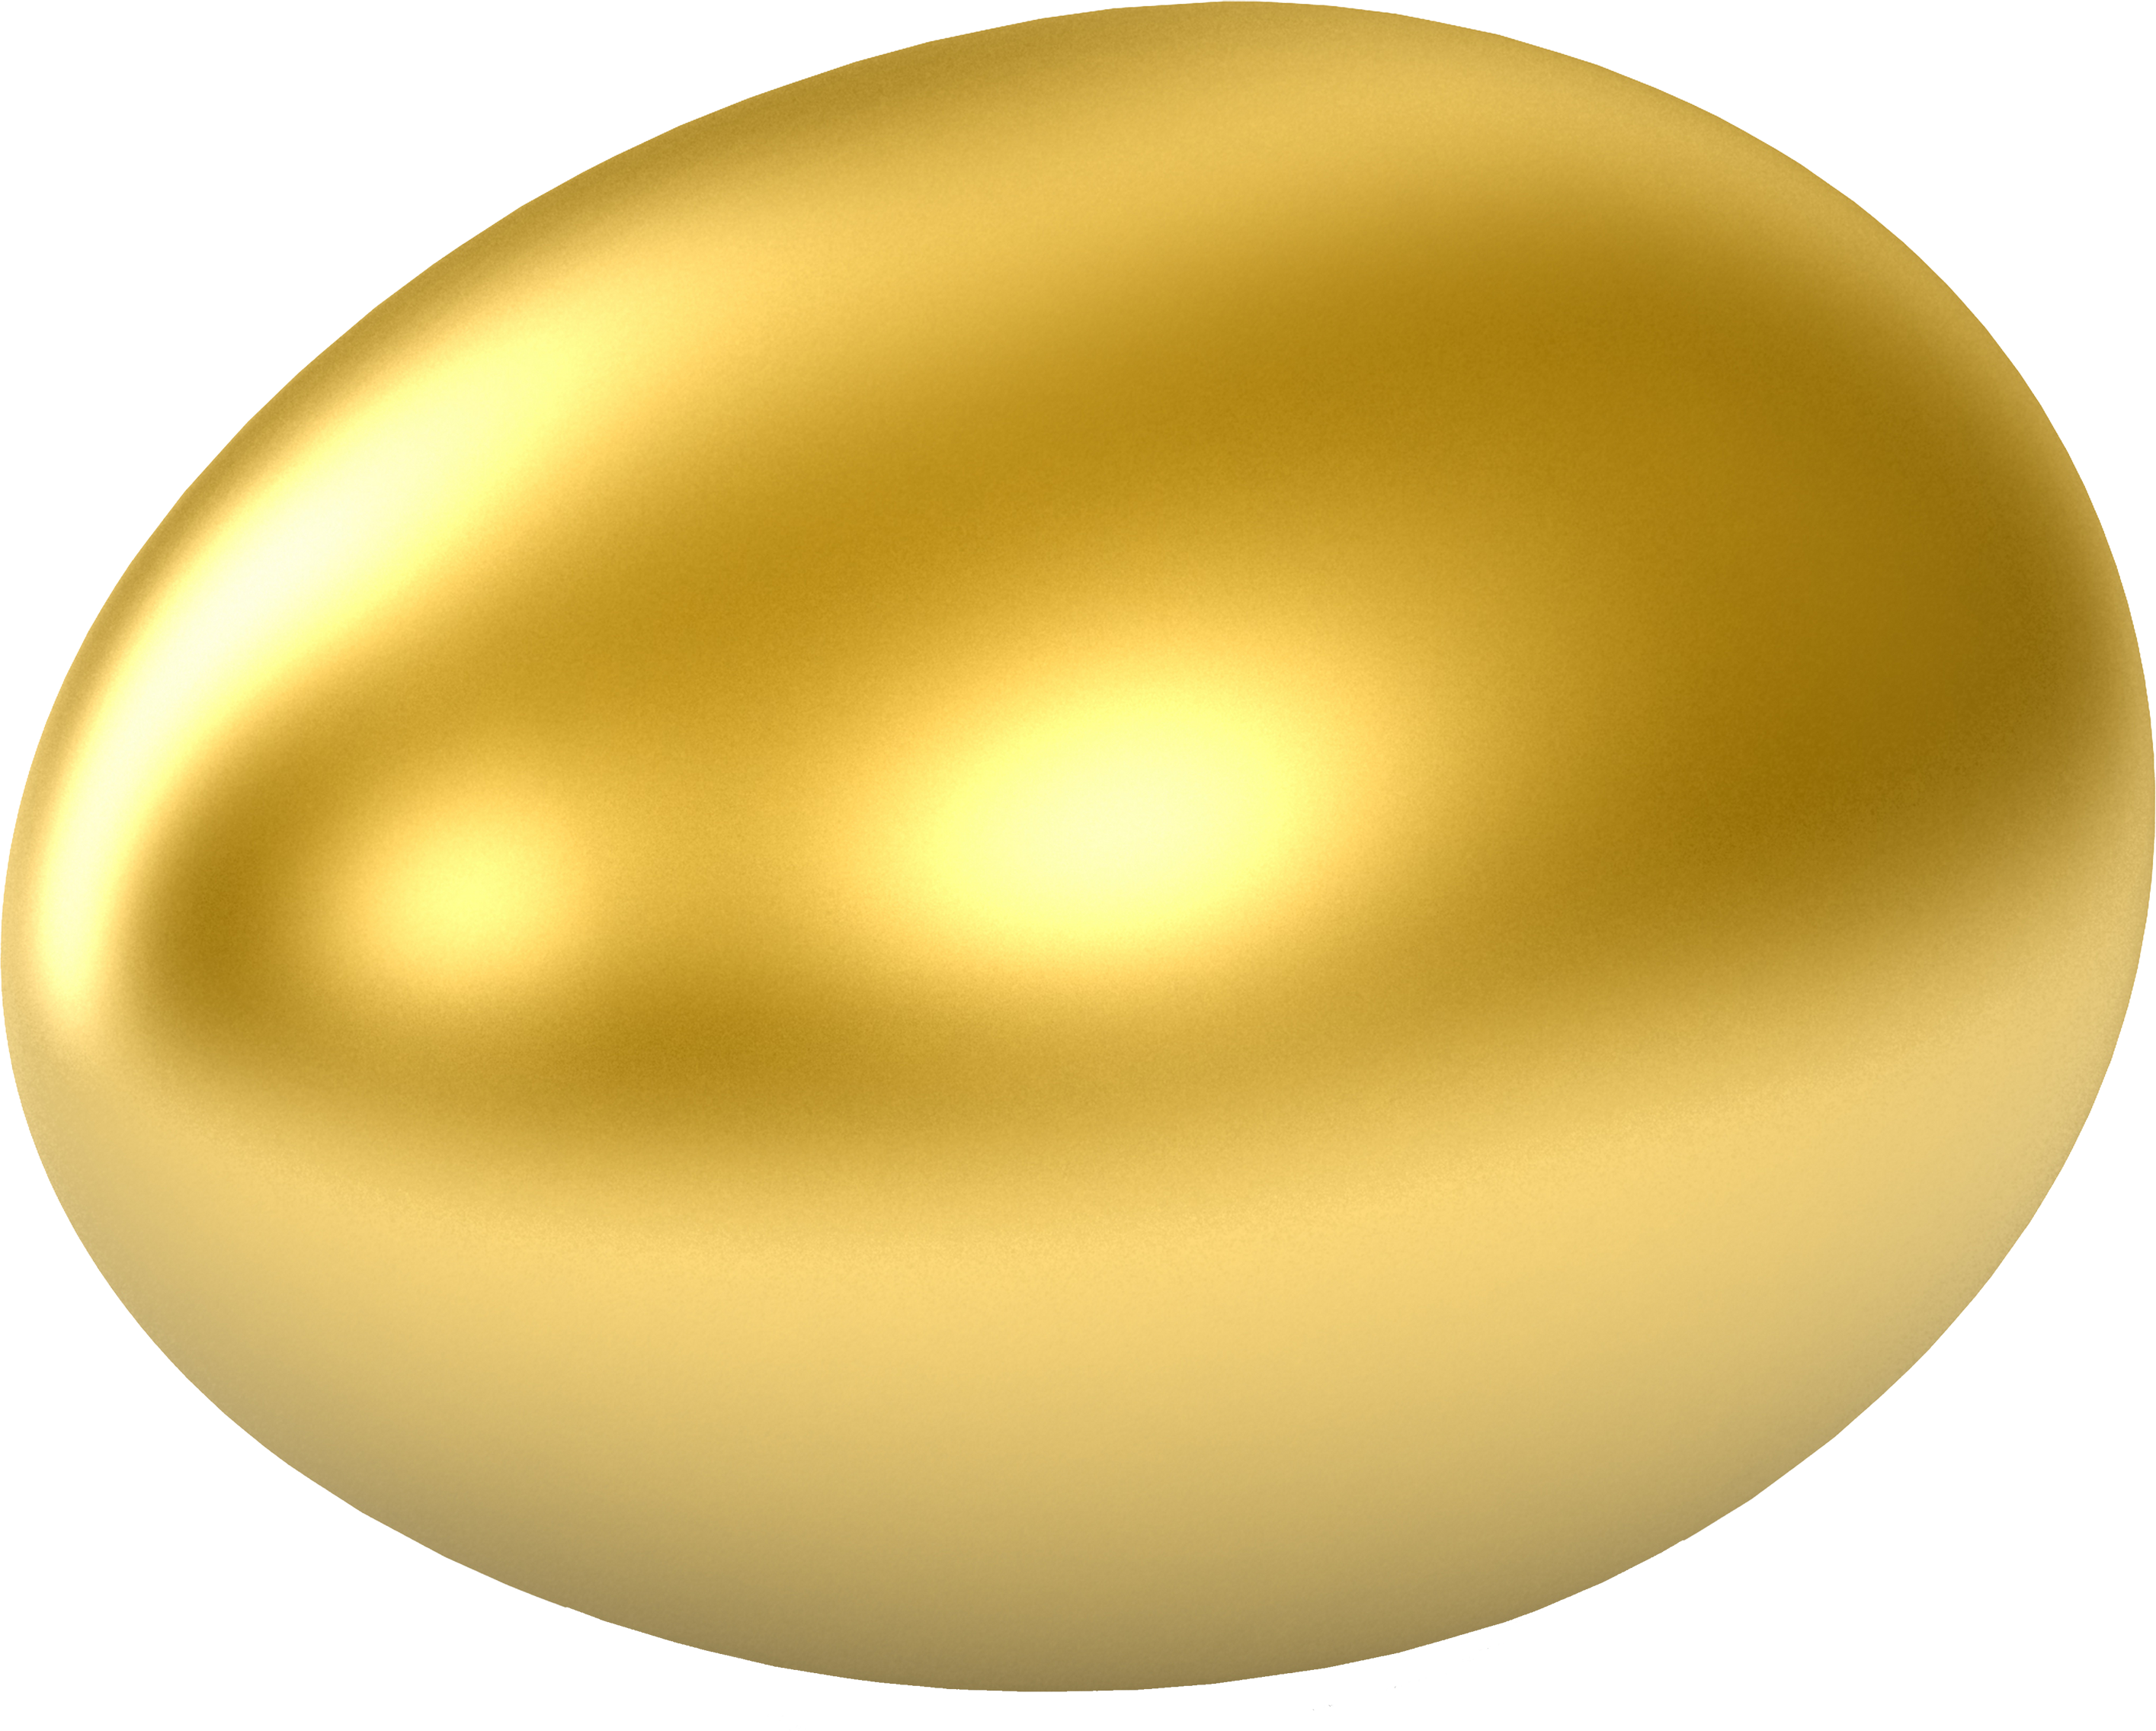 Gold egg PNG image - Egg HD PNG - Broken Egg PNG HD